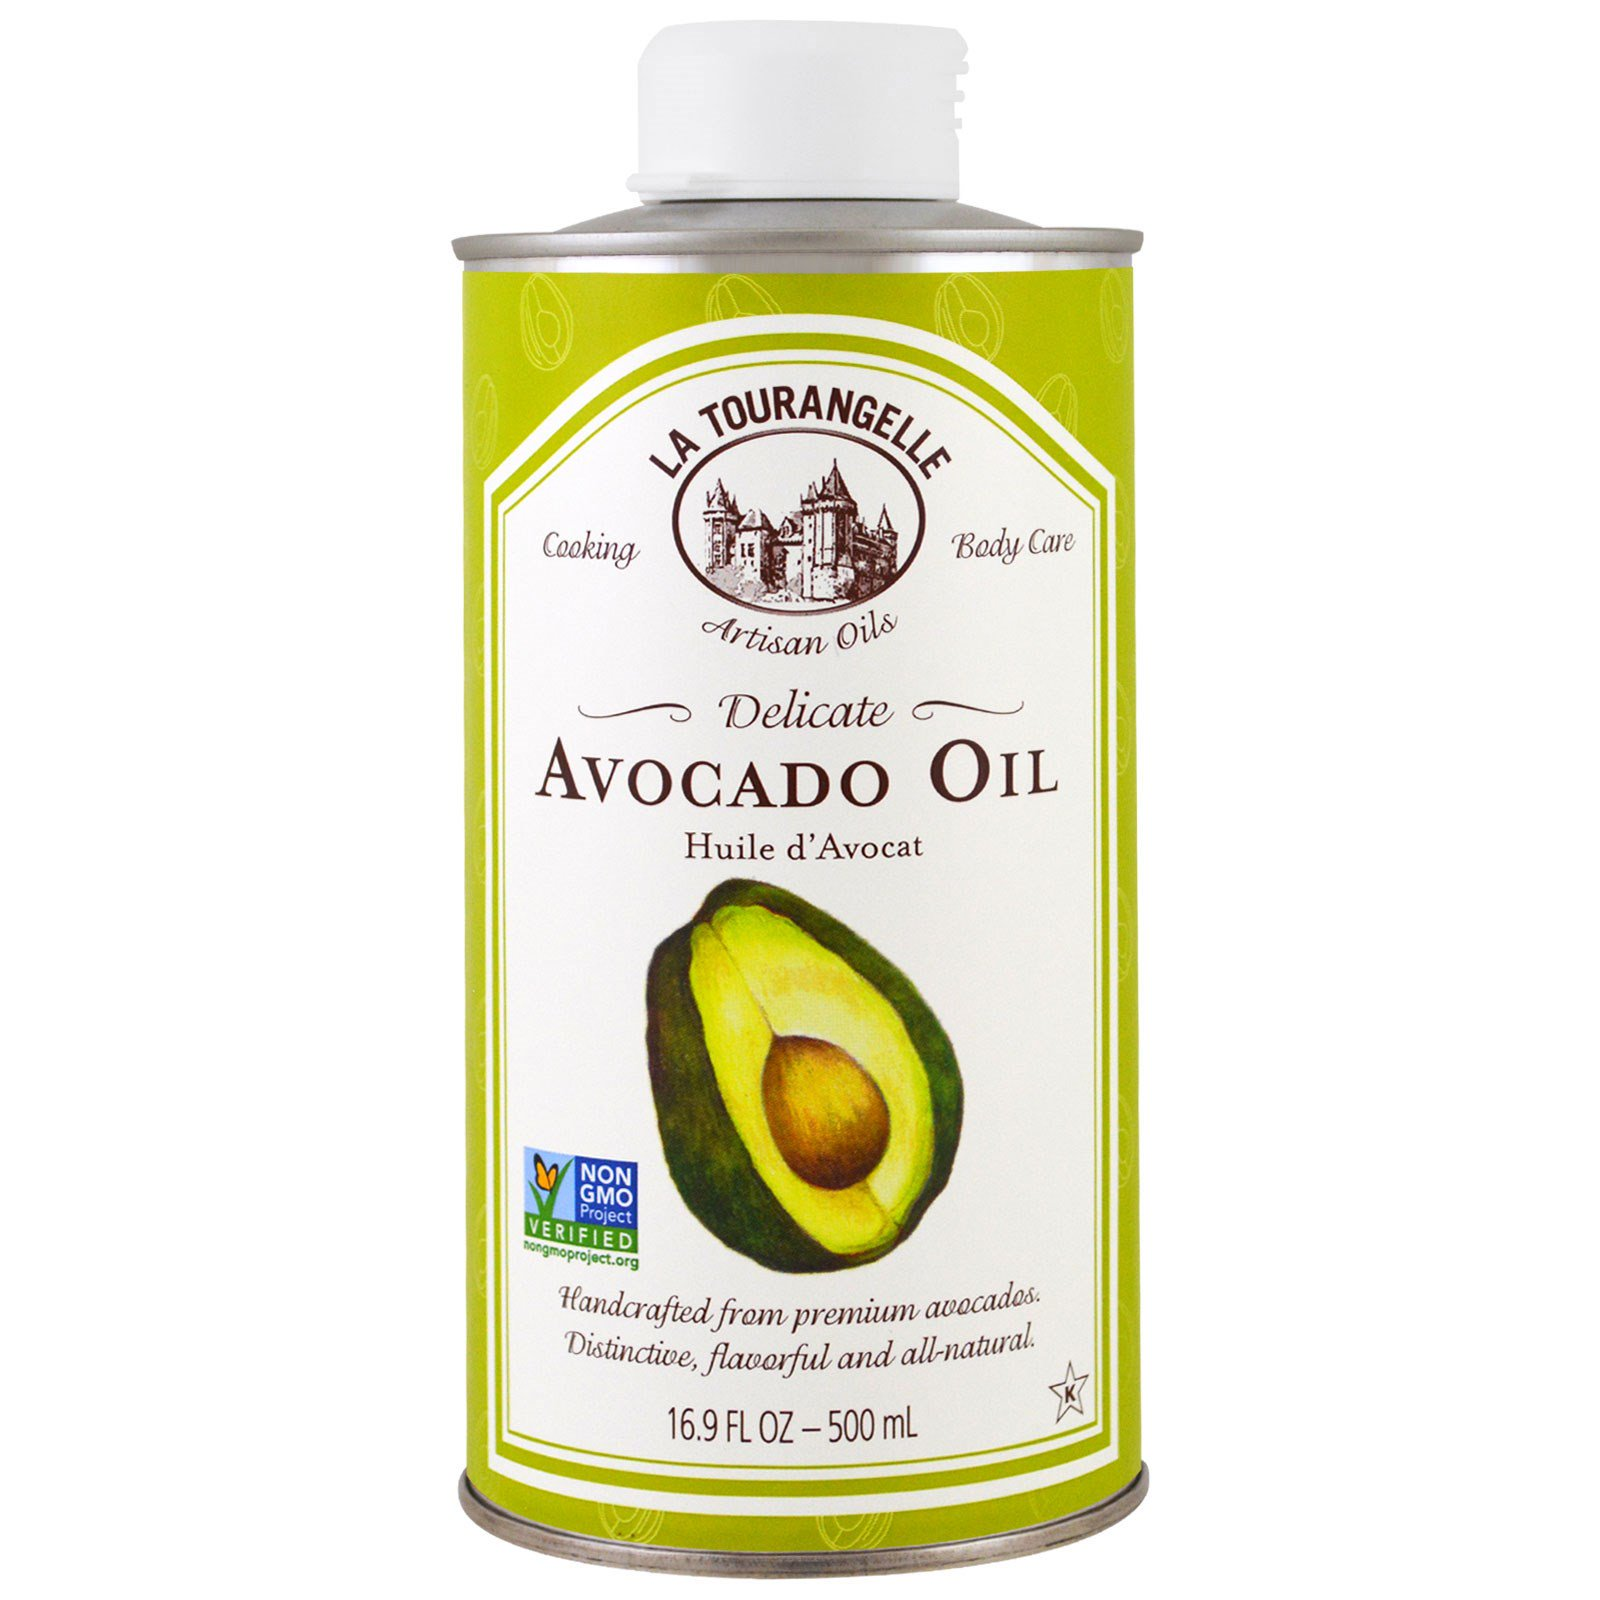 Avocado facial oil and softgel